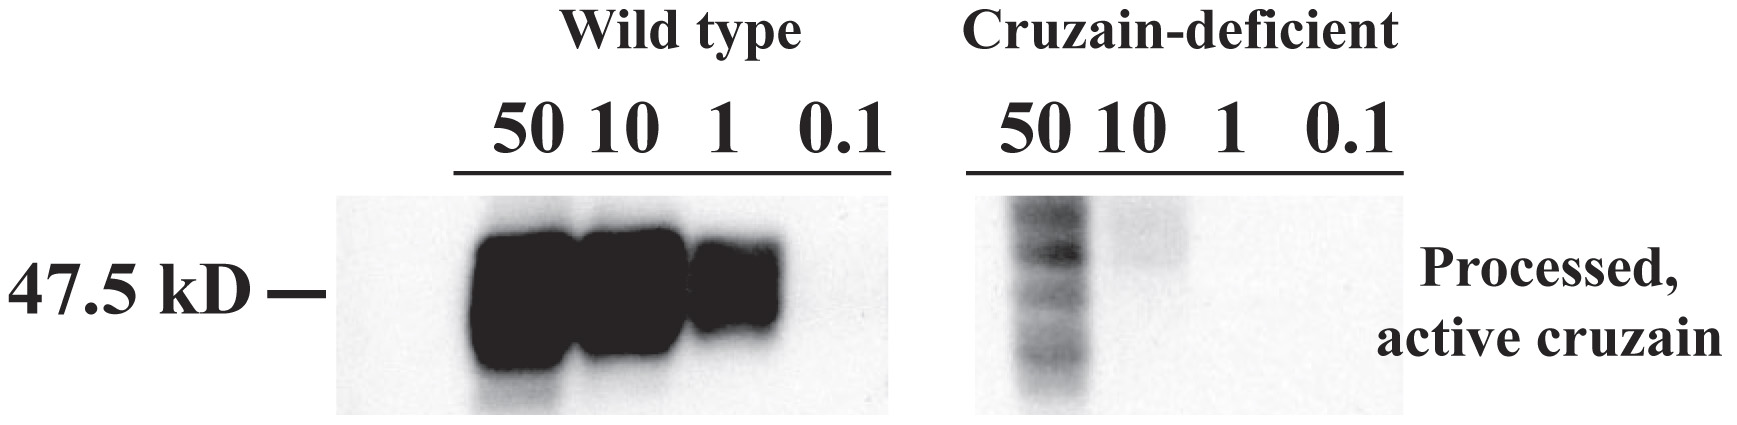 An active site affinity tag identifies processed active proteases of wild type and cruzain deficient <i>T. cruzi.</i>